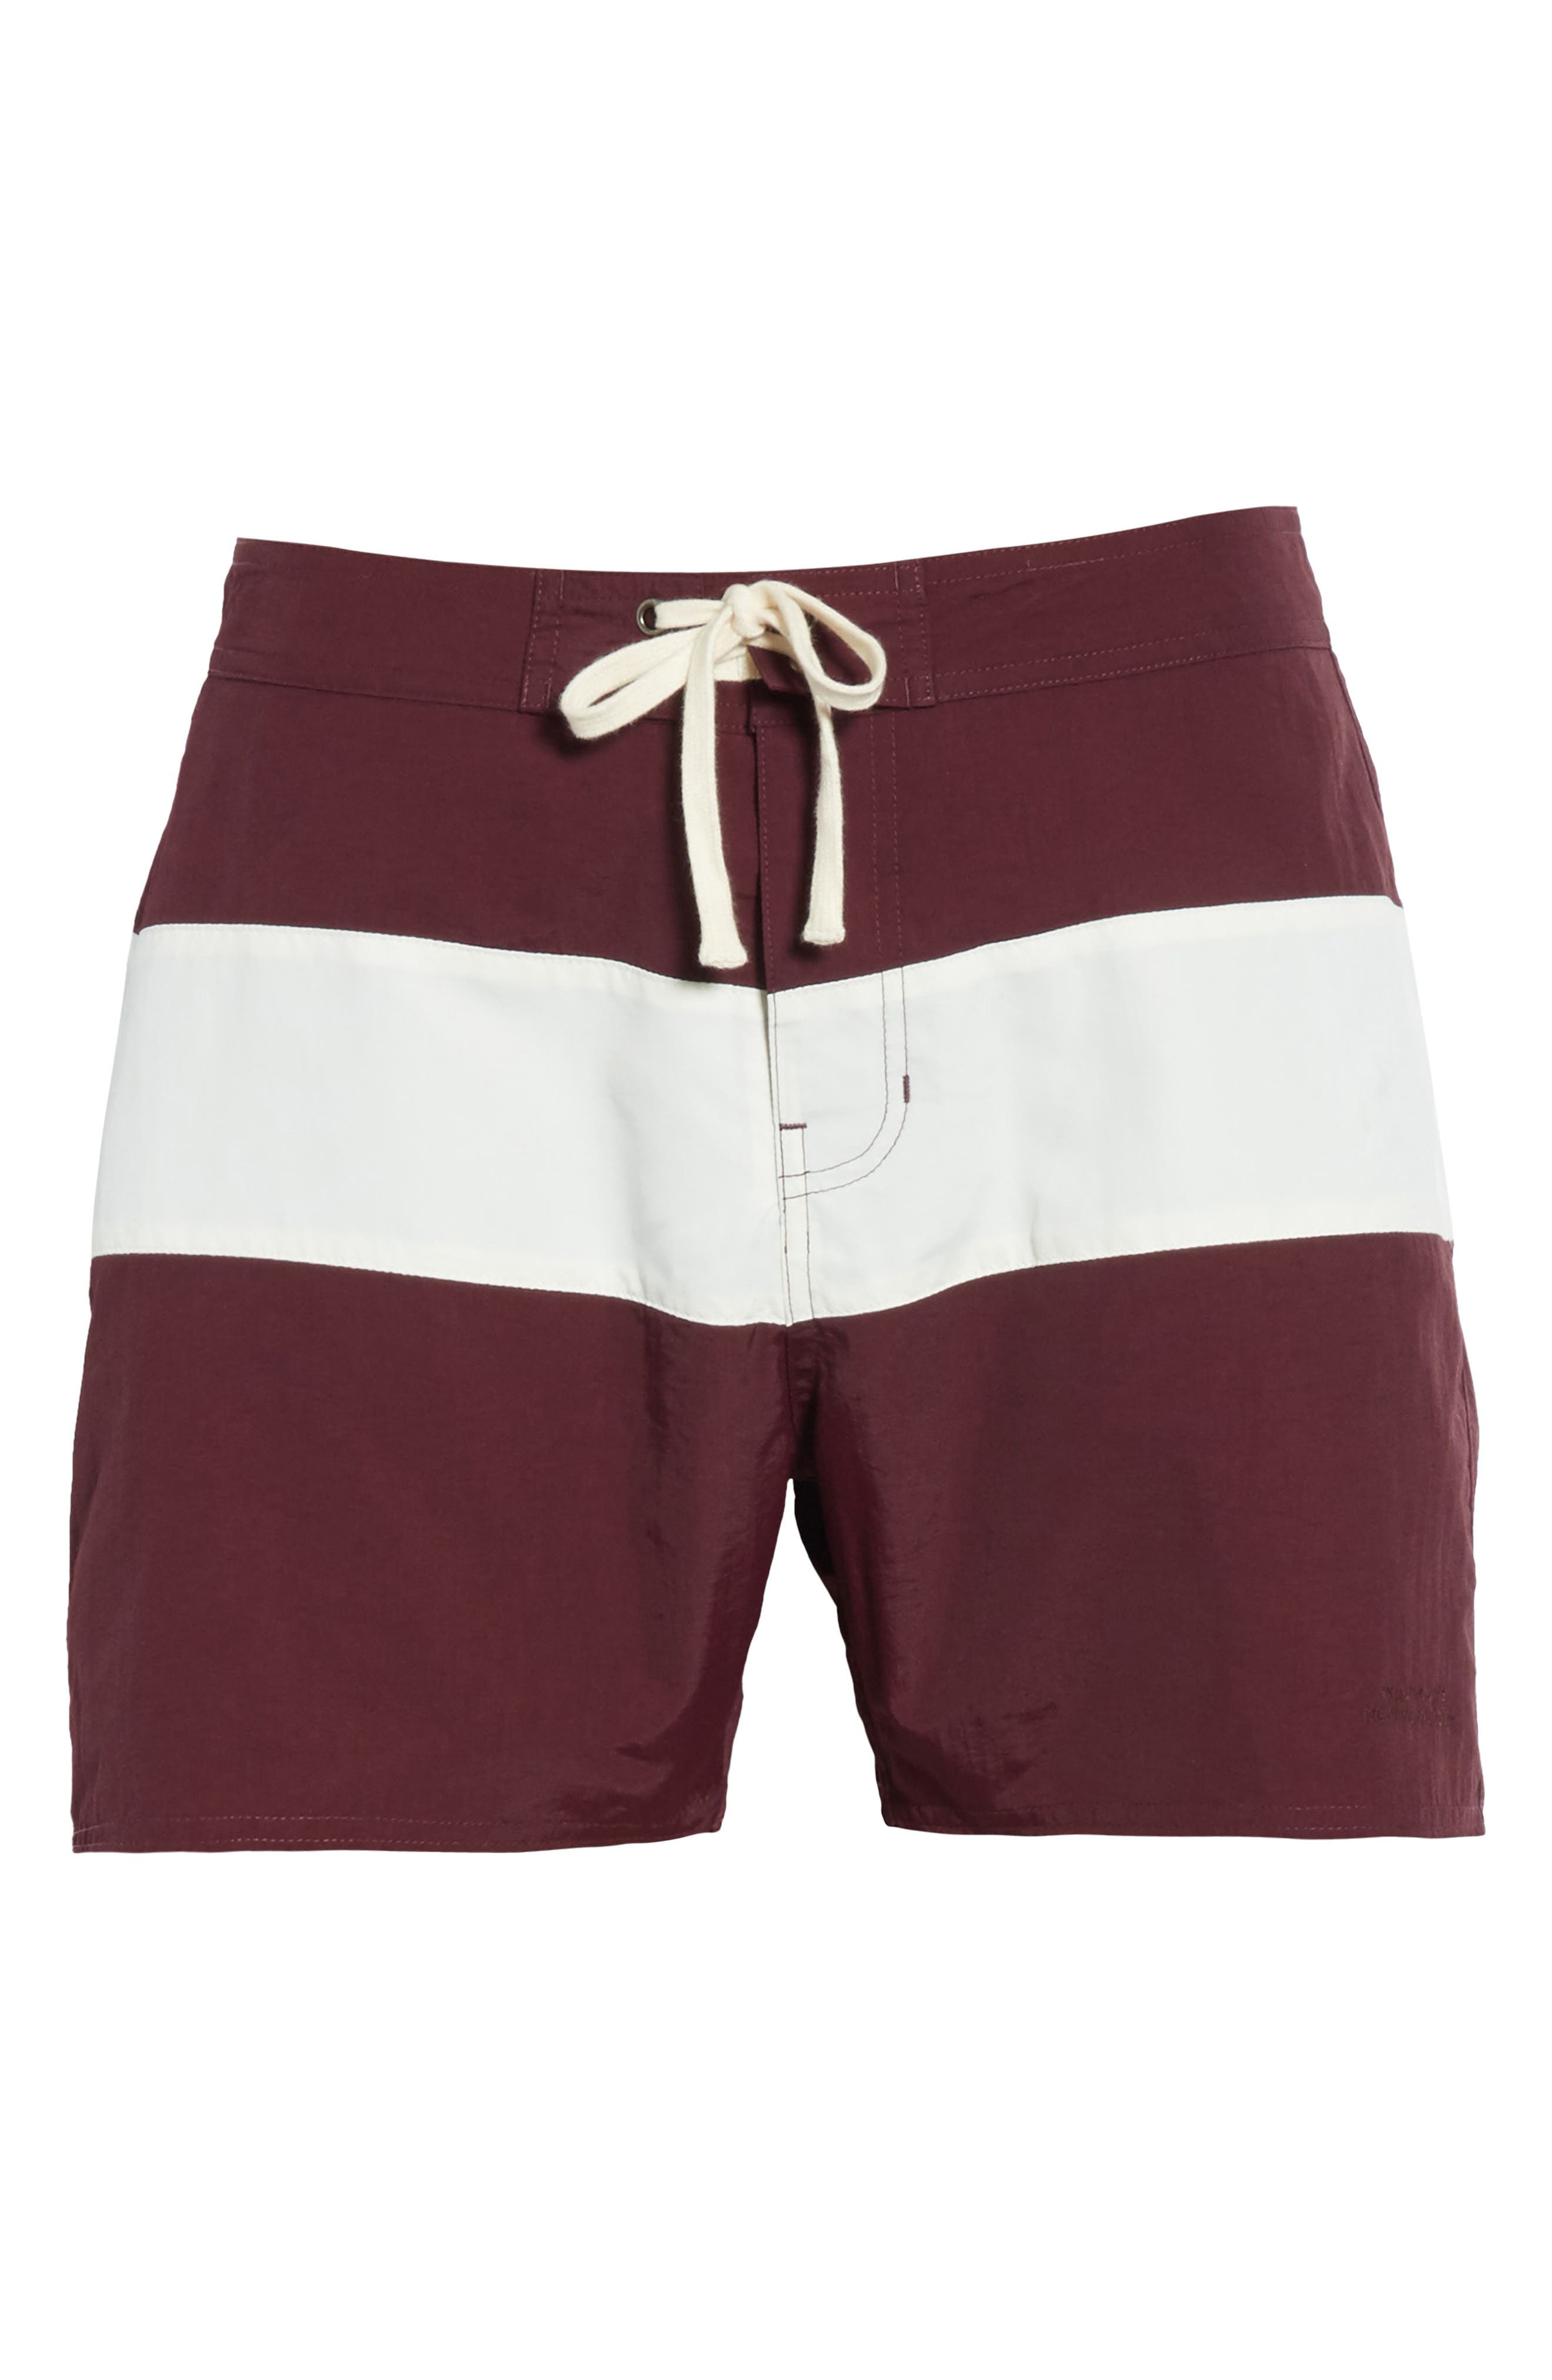 Grant Board Shorts,                             Alternate thumbnail 6, color,                             Dark Mauve/Ivory